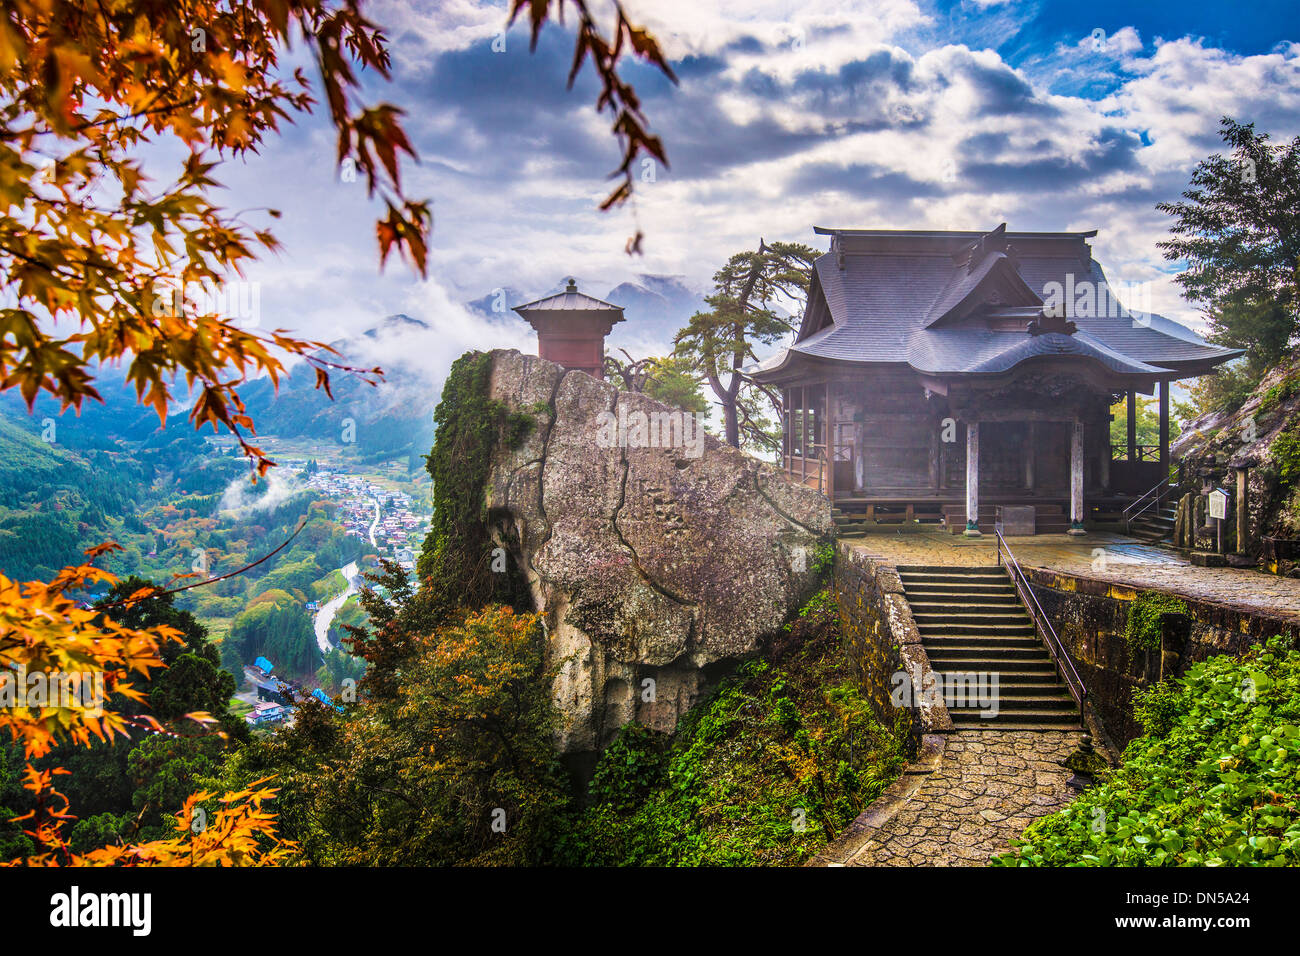 Yamadera Mountain Temple in Yamagata, Japan. - Stock Image